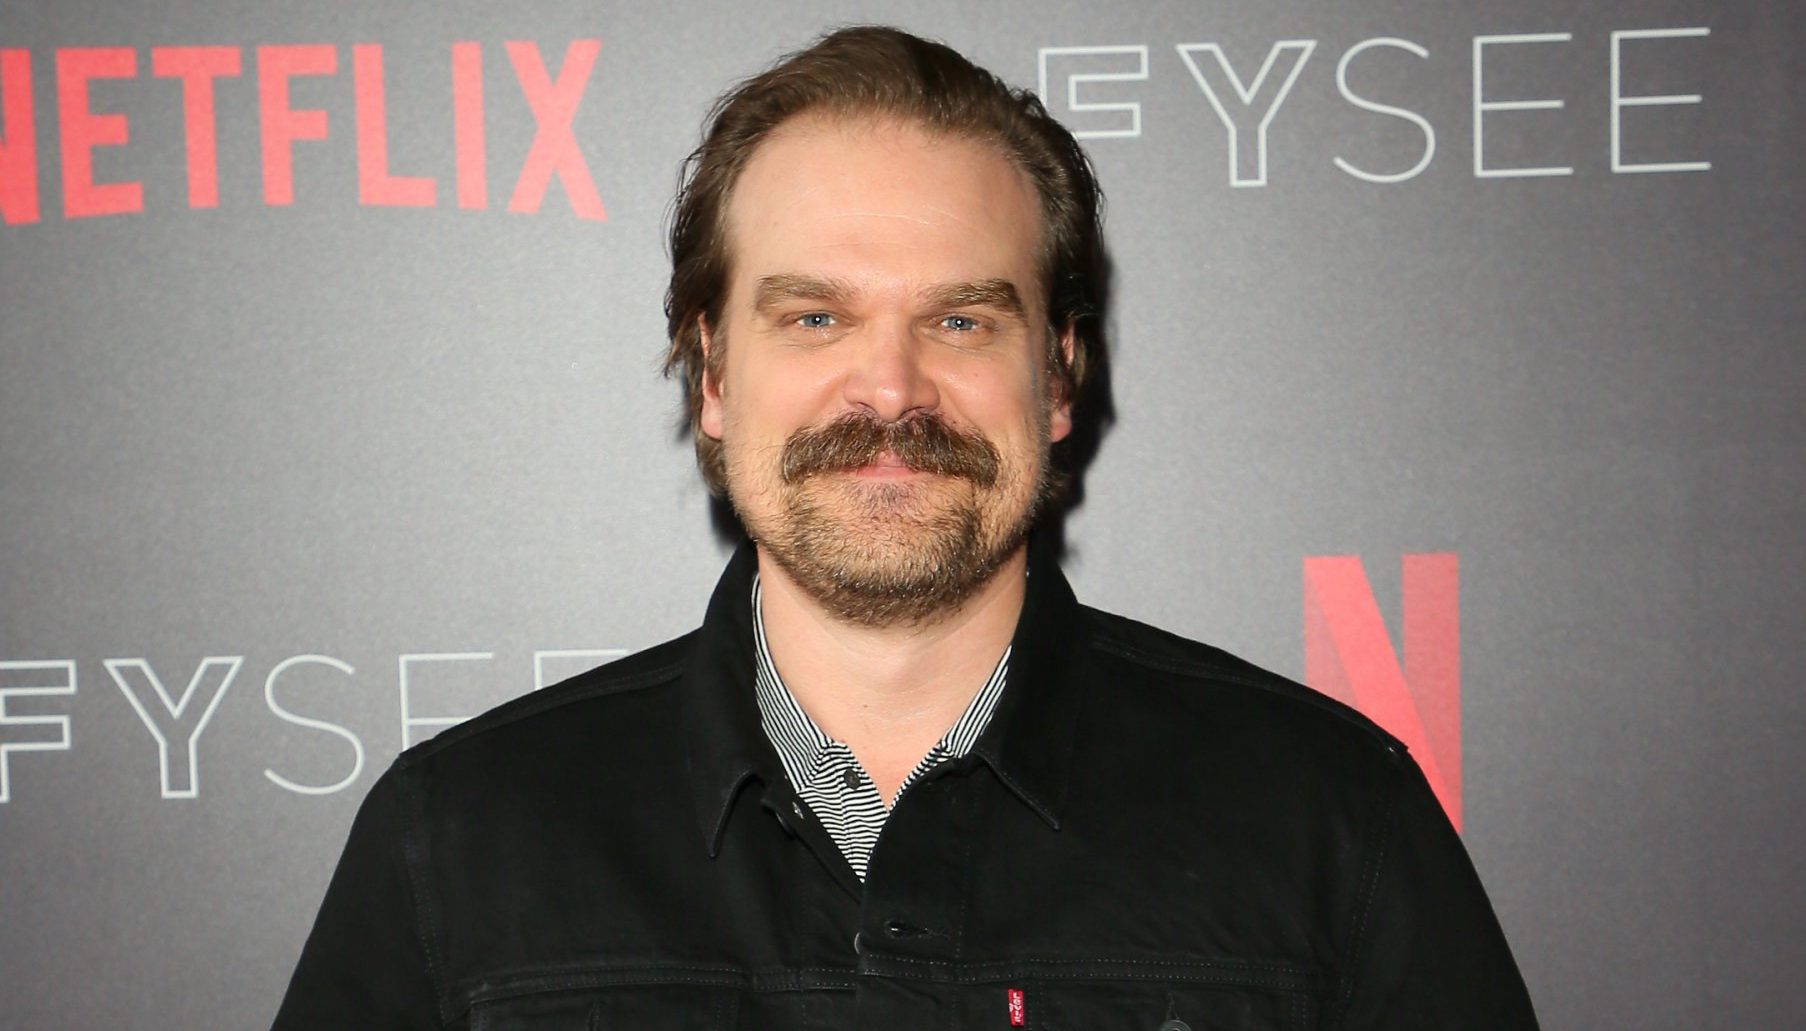 BEVERLY HILLS, CA - MAY 10: David Harbour attends the Netflix #FYSee 'Scene Stealers' on May 10, 2018 in Hollywood, California. (Photo by JB Lacroix/WireImage)